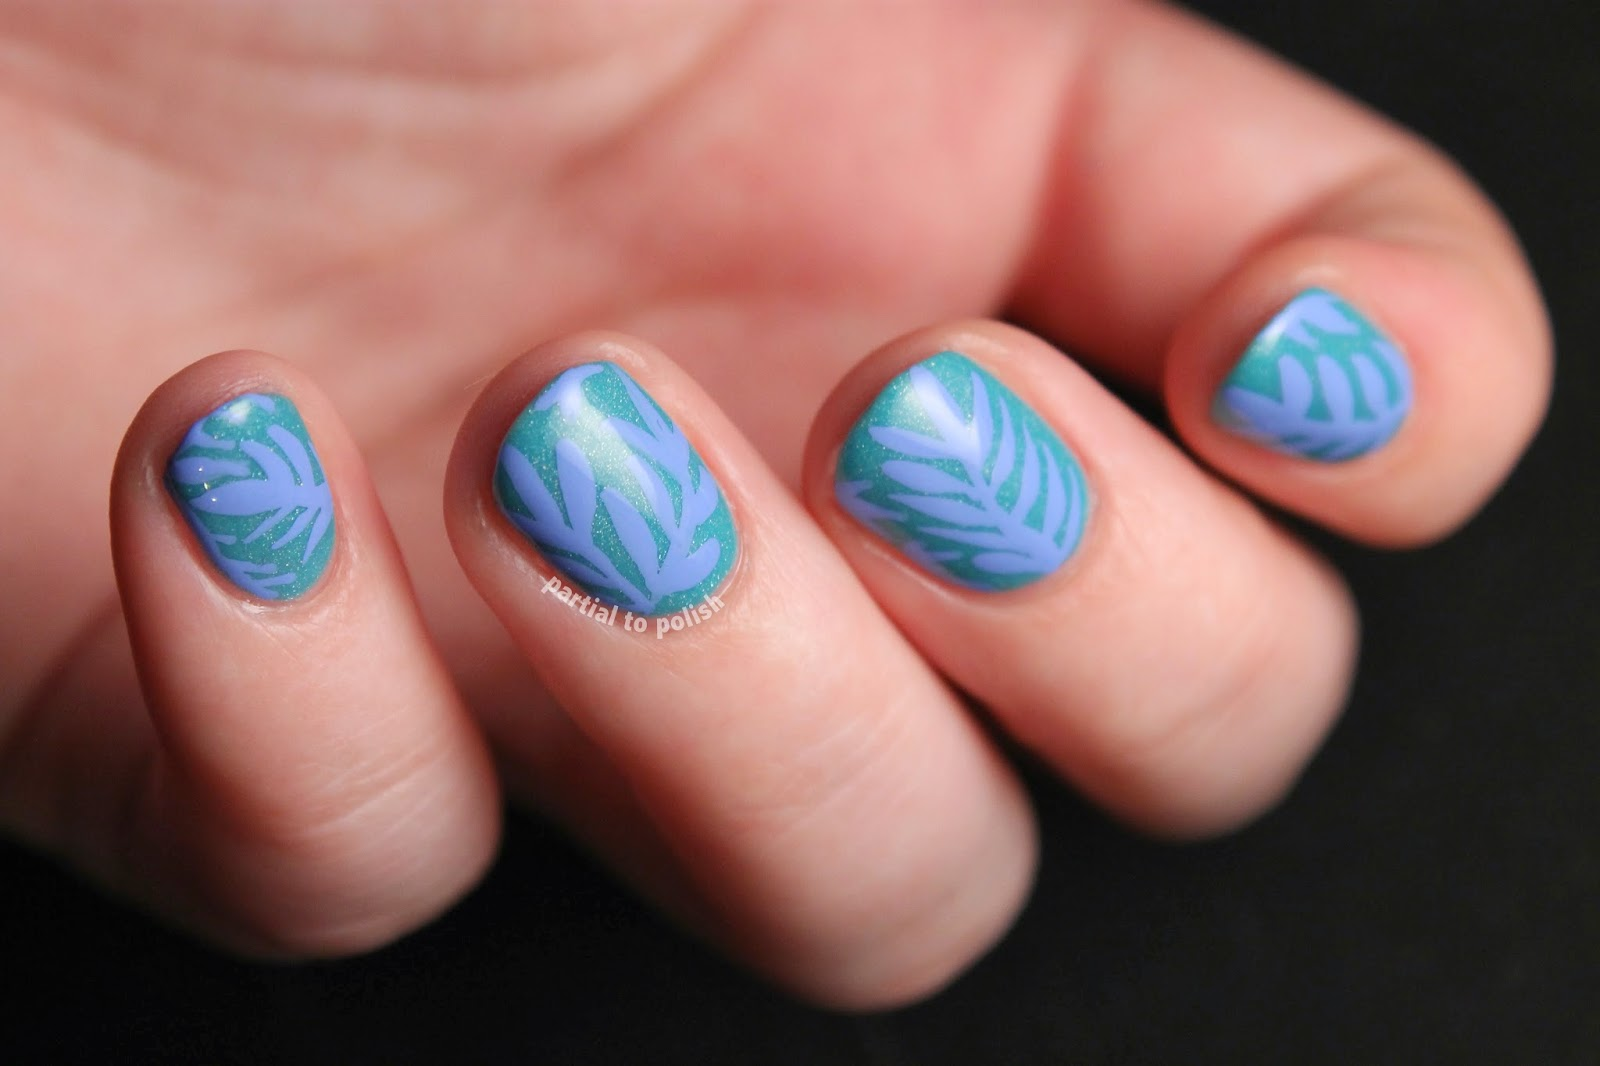 Mrcandiipants Inspired Fern/Leaf Nail Art